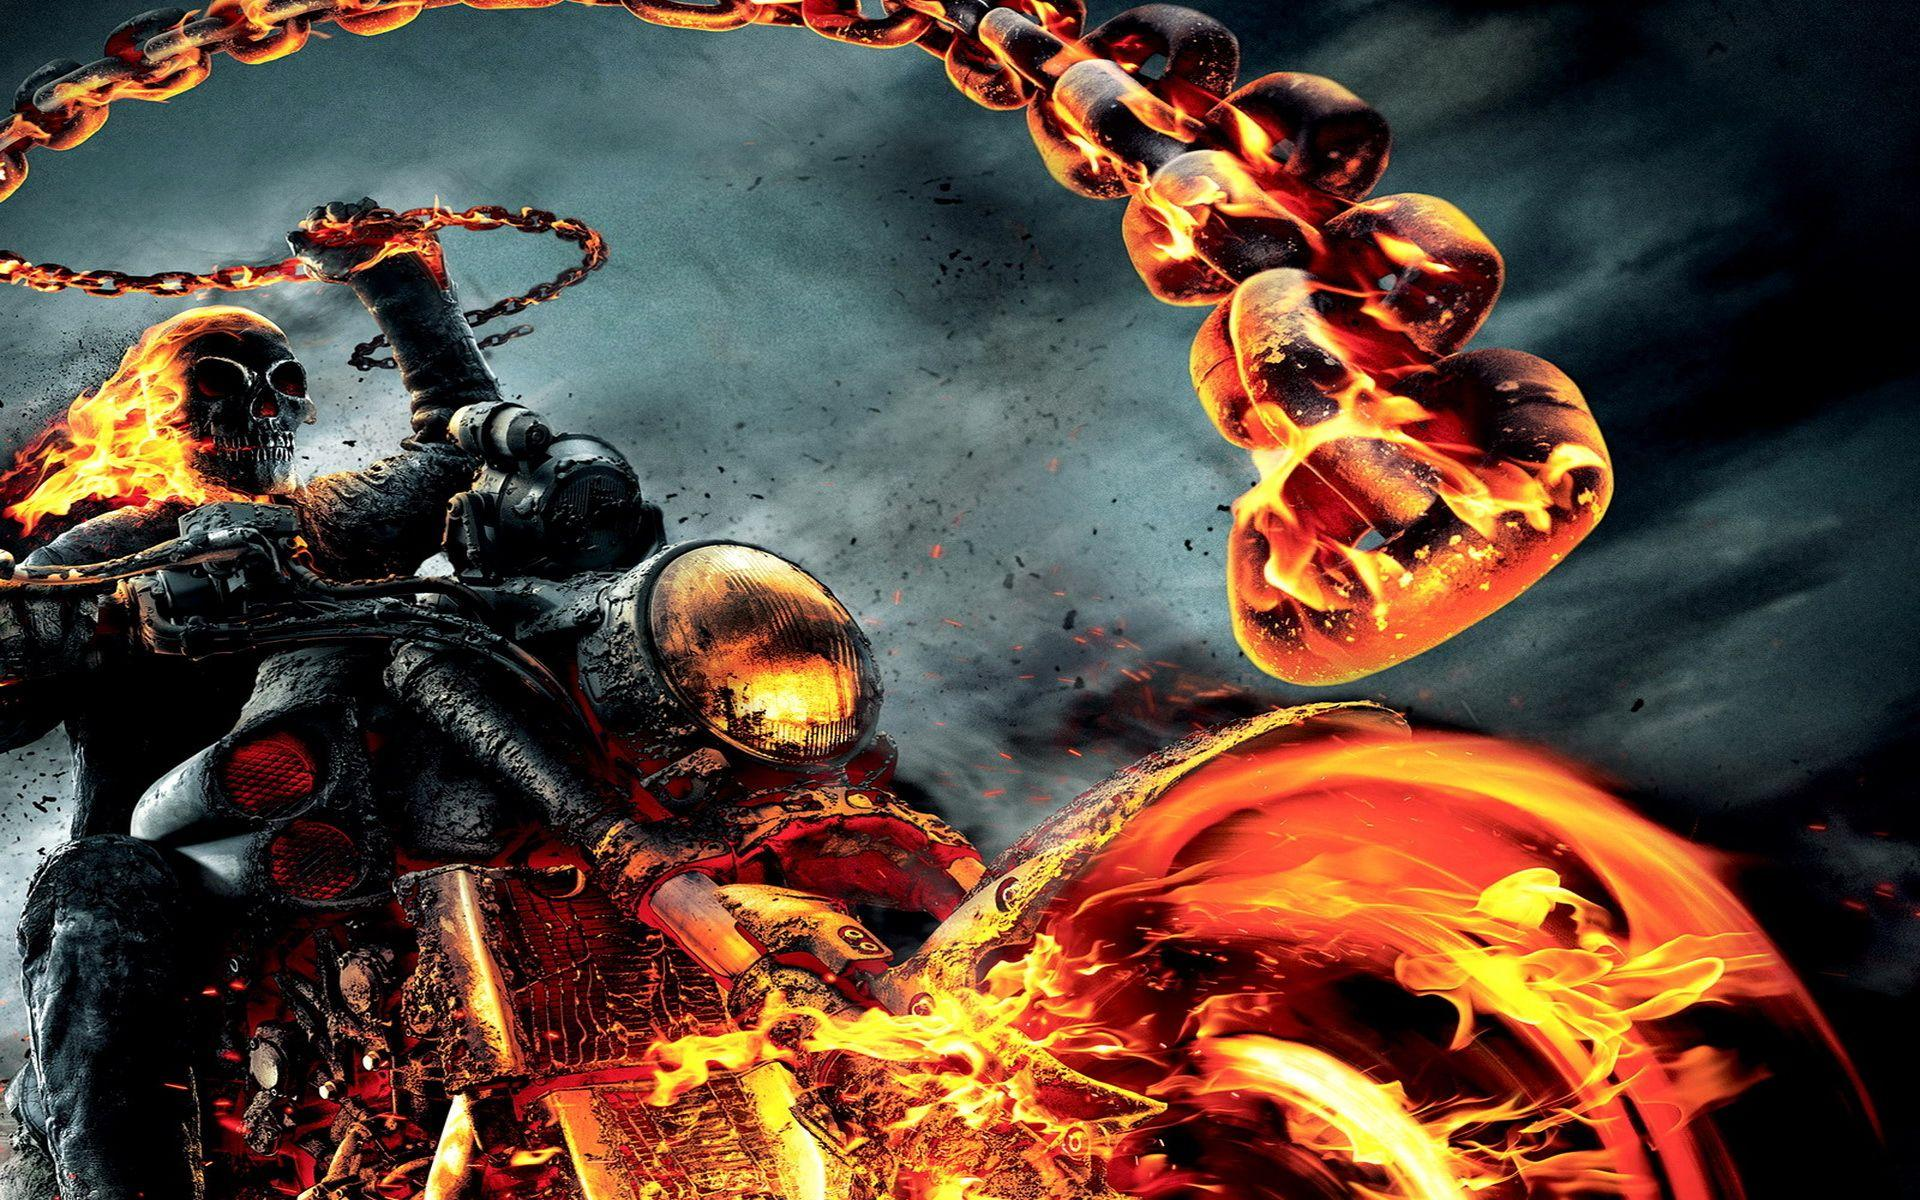 ghost rider full hd wallpapers - wallpaper cave